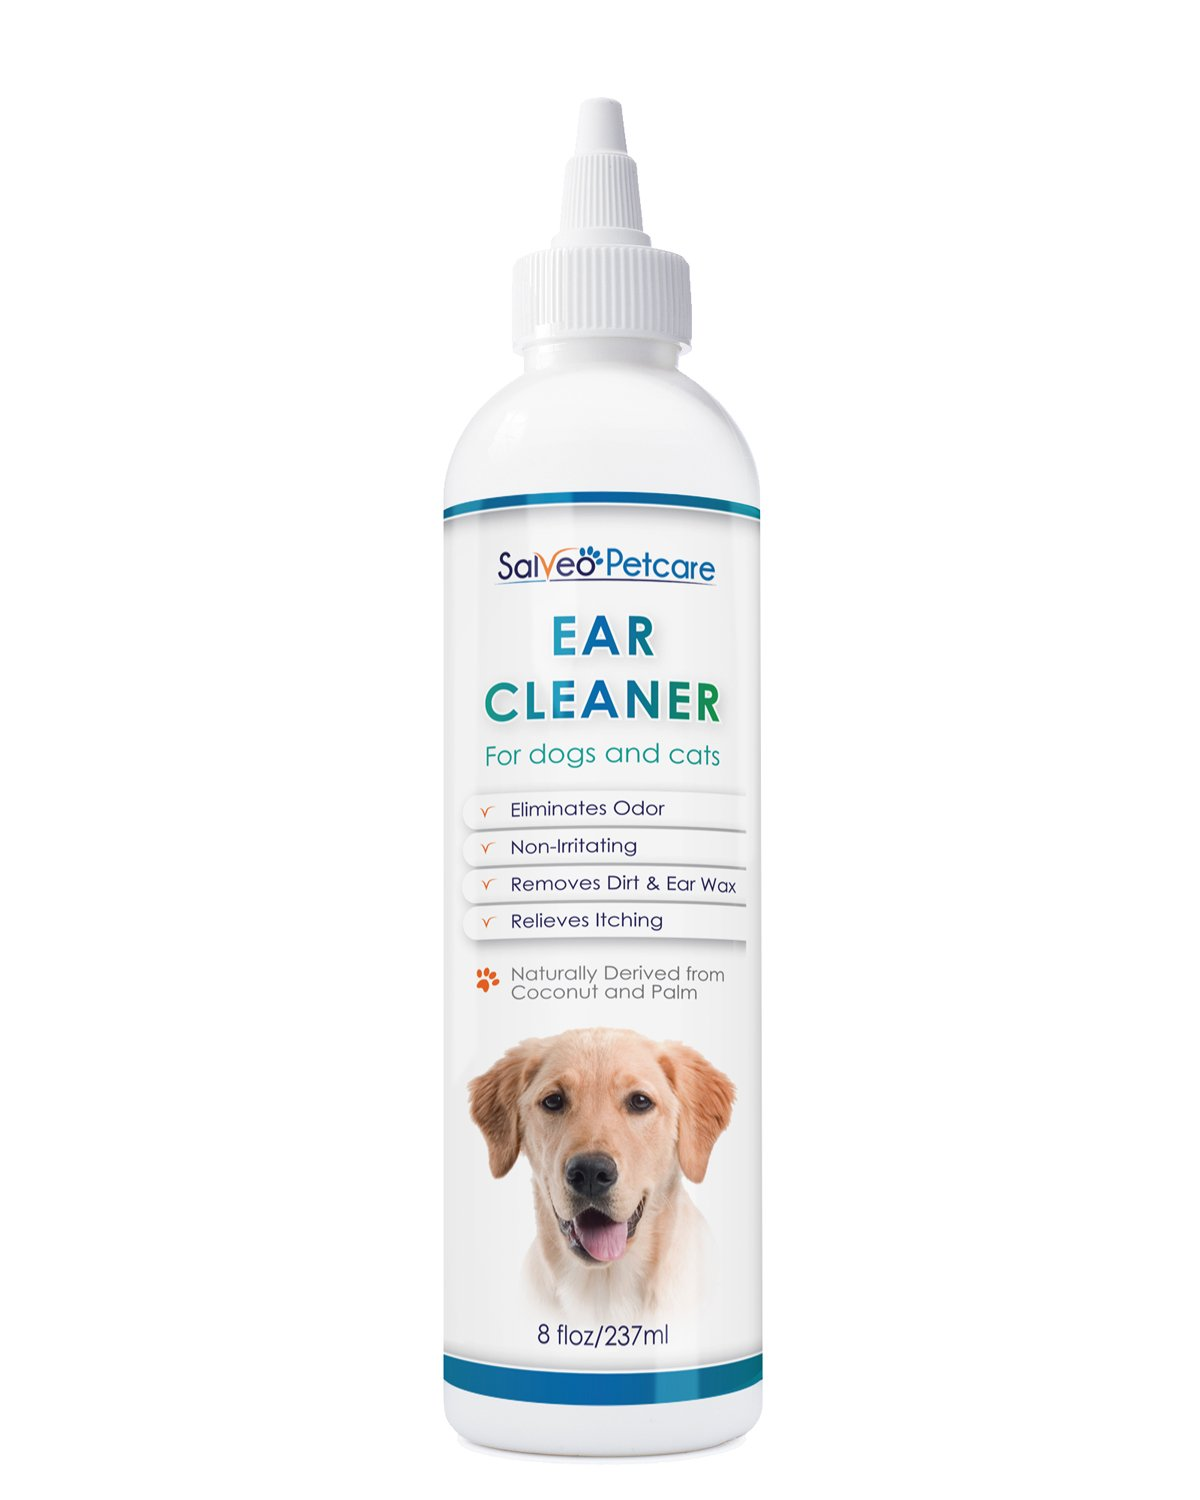 Dog Ear Cleaner Gently Removes Wax Dirt & Odor – Relieves Itching Cleans Away Infection Causing Bacteria & Yeast – Professional Strength Natural Formula - Made in USA